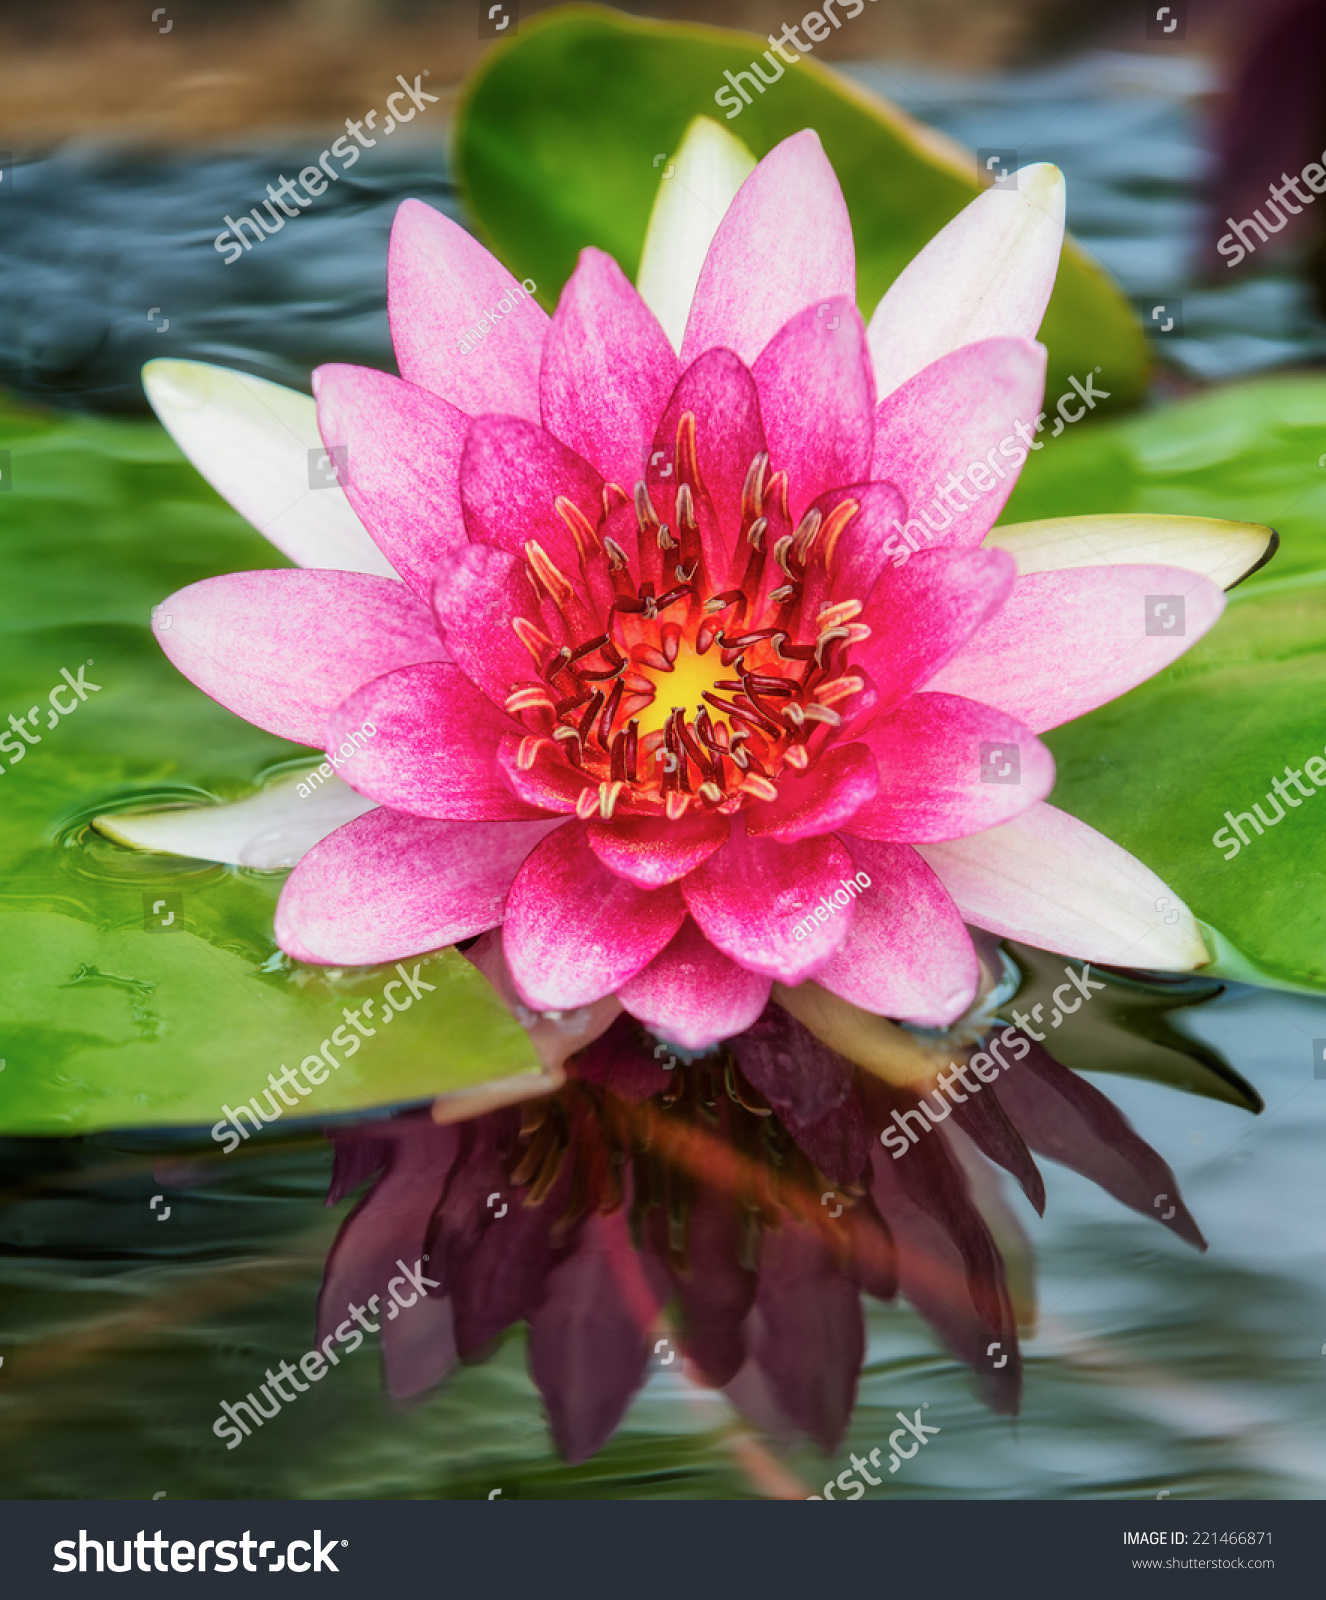 This Beautiful Waterlily Lotus Flower Complimented Stock Photo ...